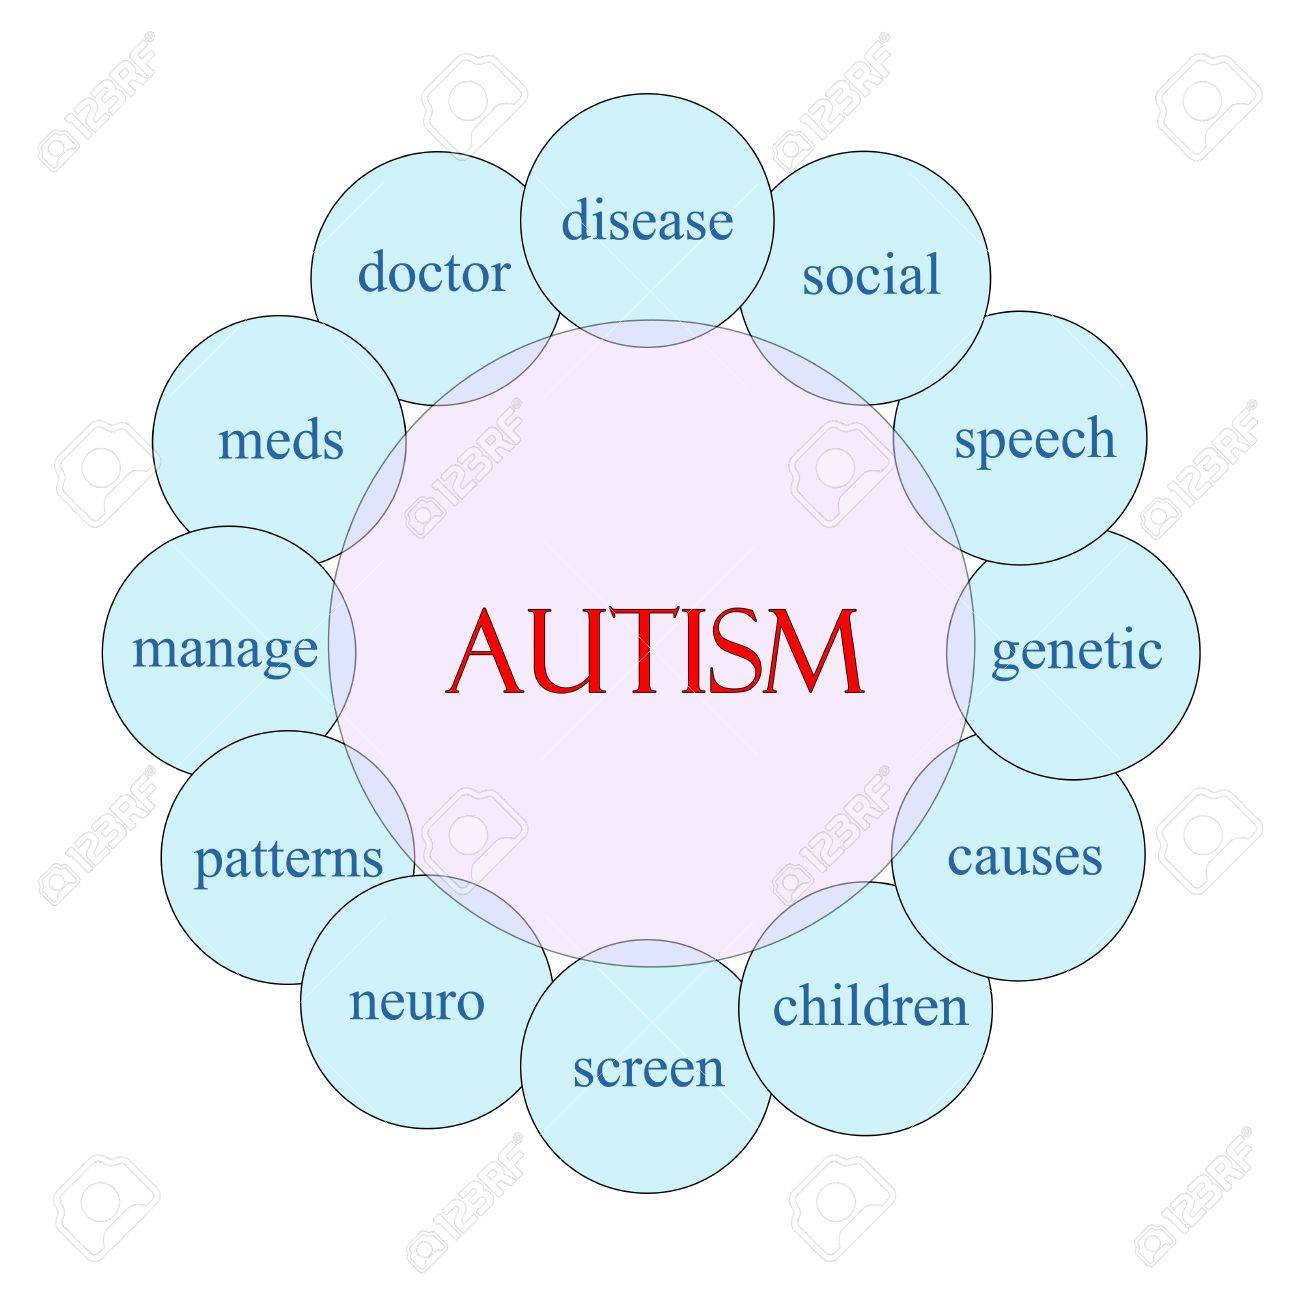 autism concept circular diagram in pink and blue with great terms Environment and Autism autism concept circular diagram in pink and blue with great terms such as disease, social